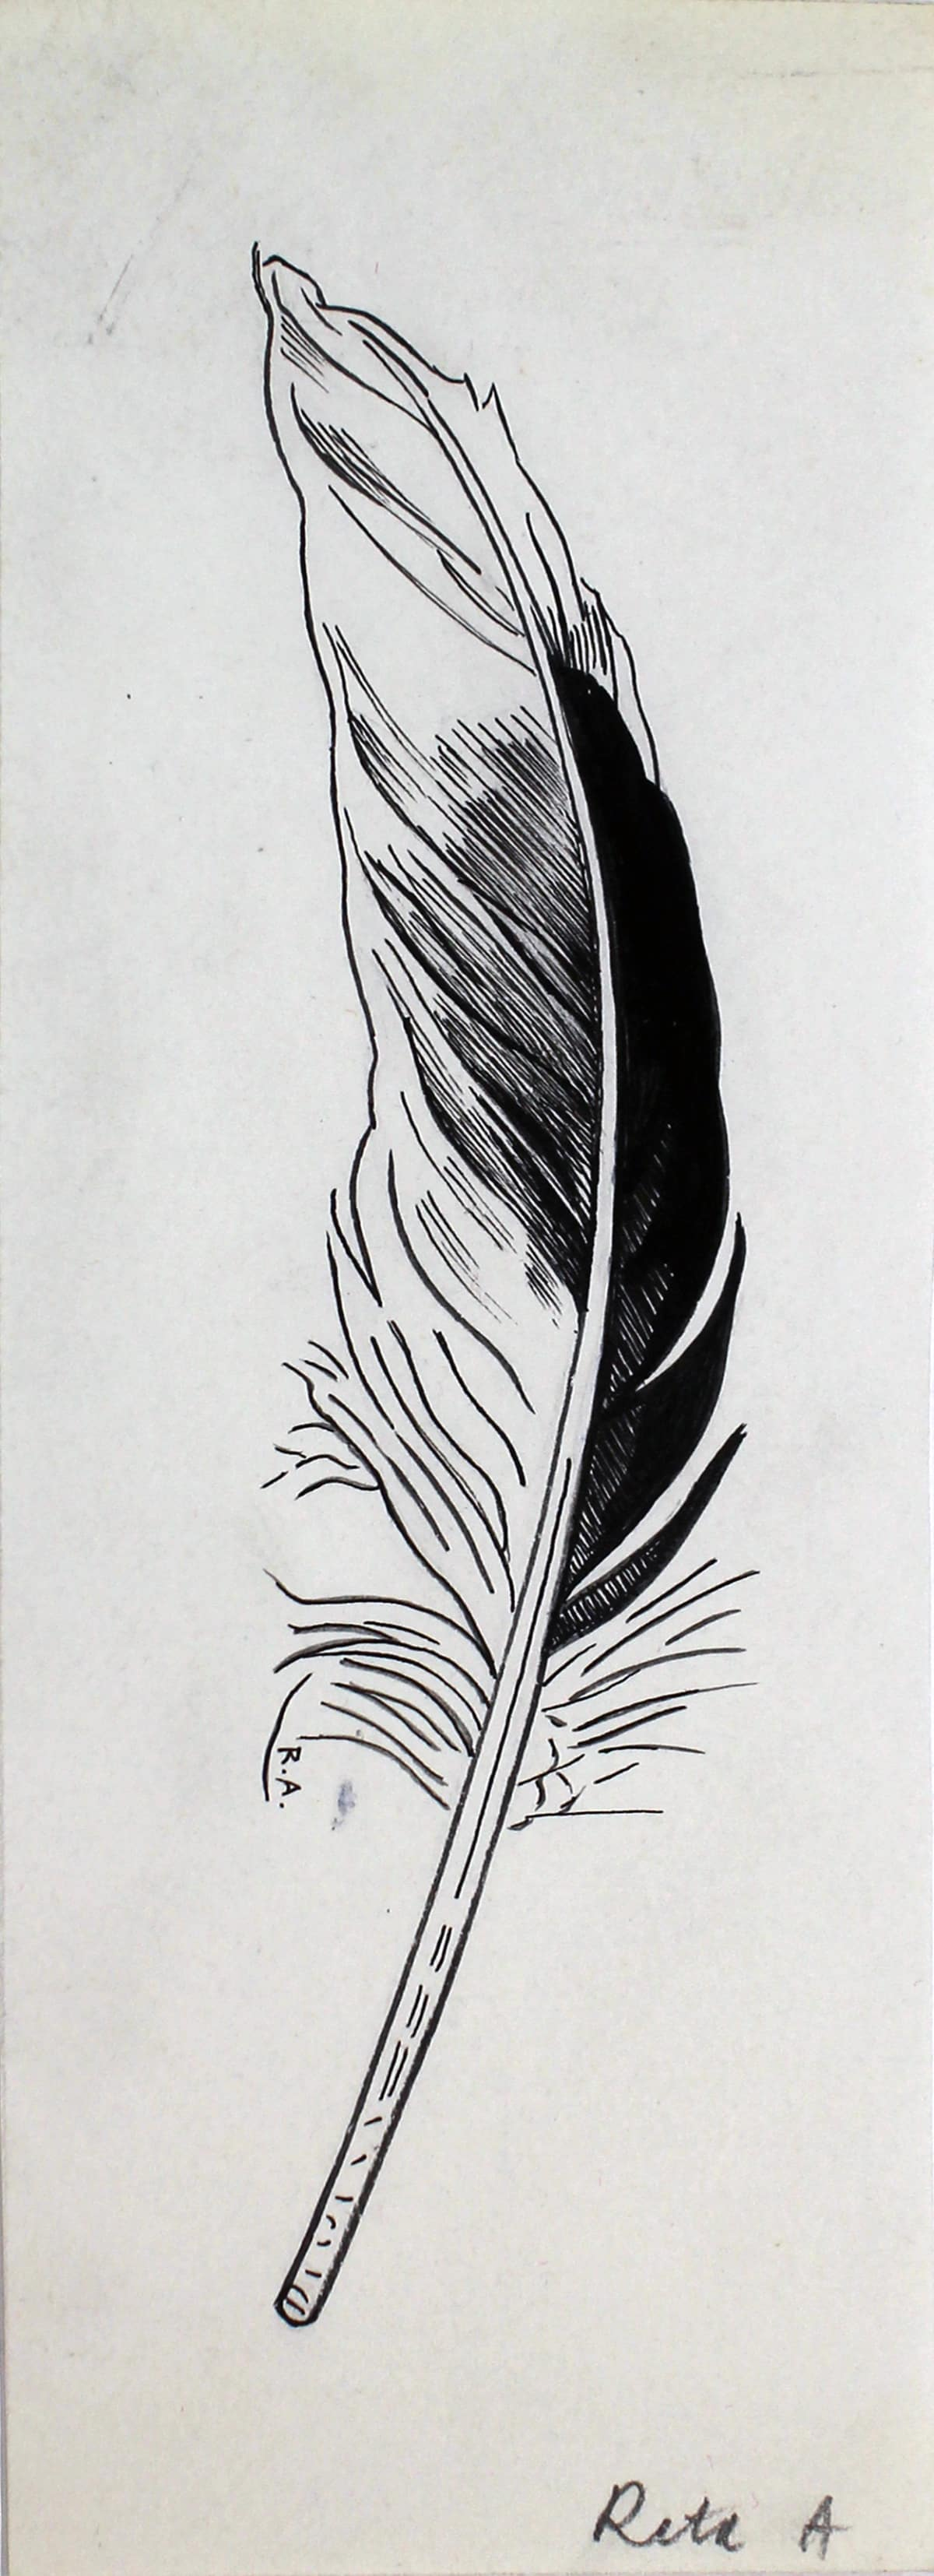 Rita Angus Untitled [Feather], 1950s Ink on paper 7.5 x 1.8 in 19 x 4.5 cm